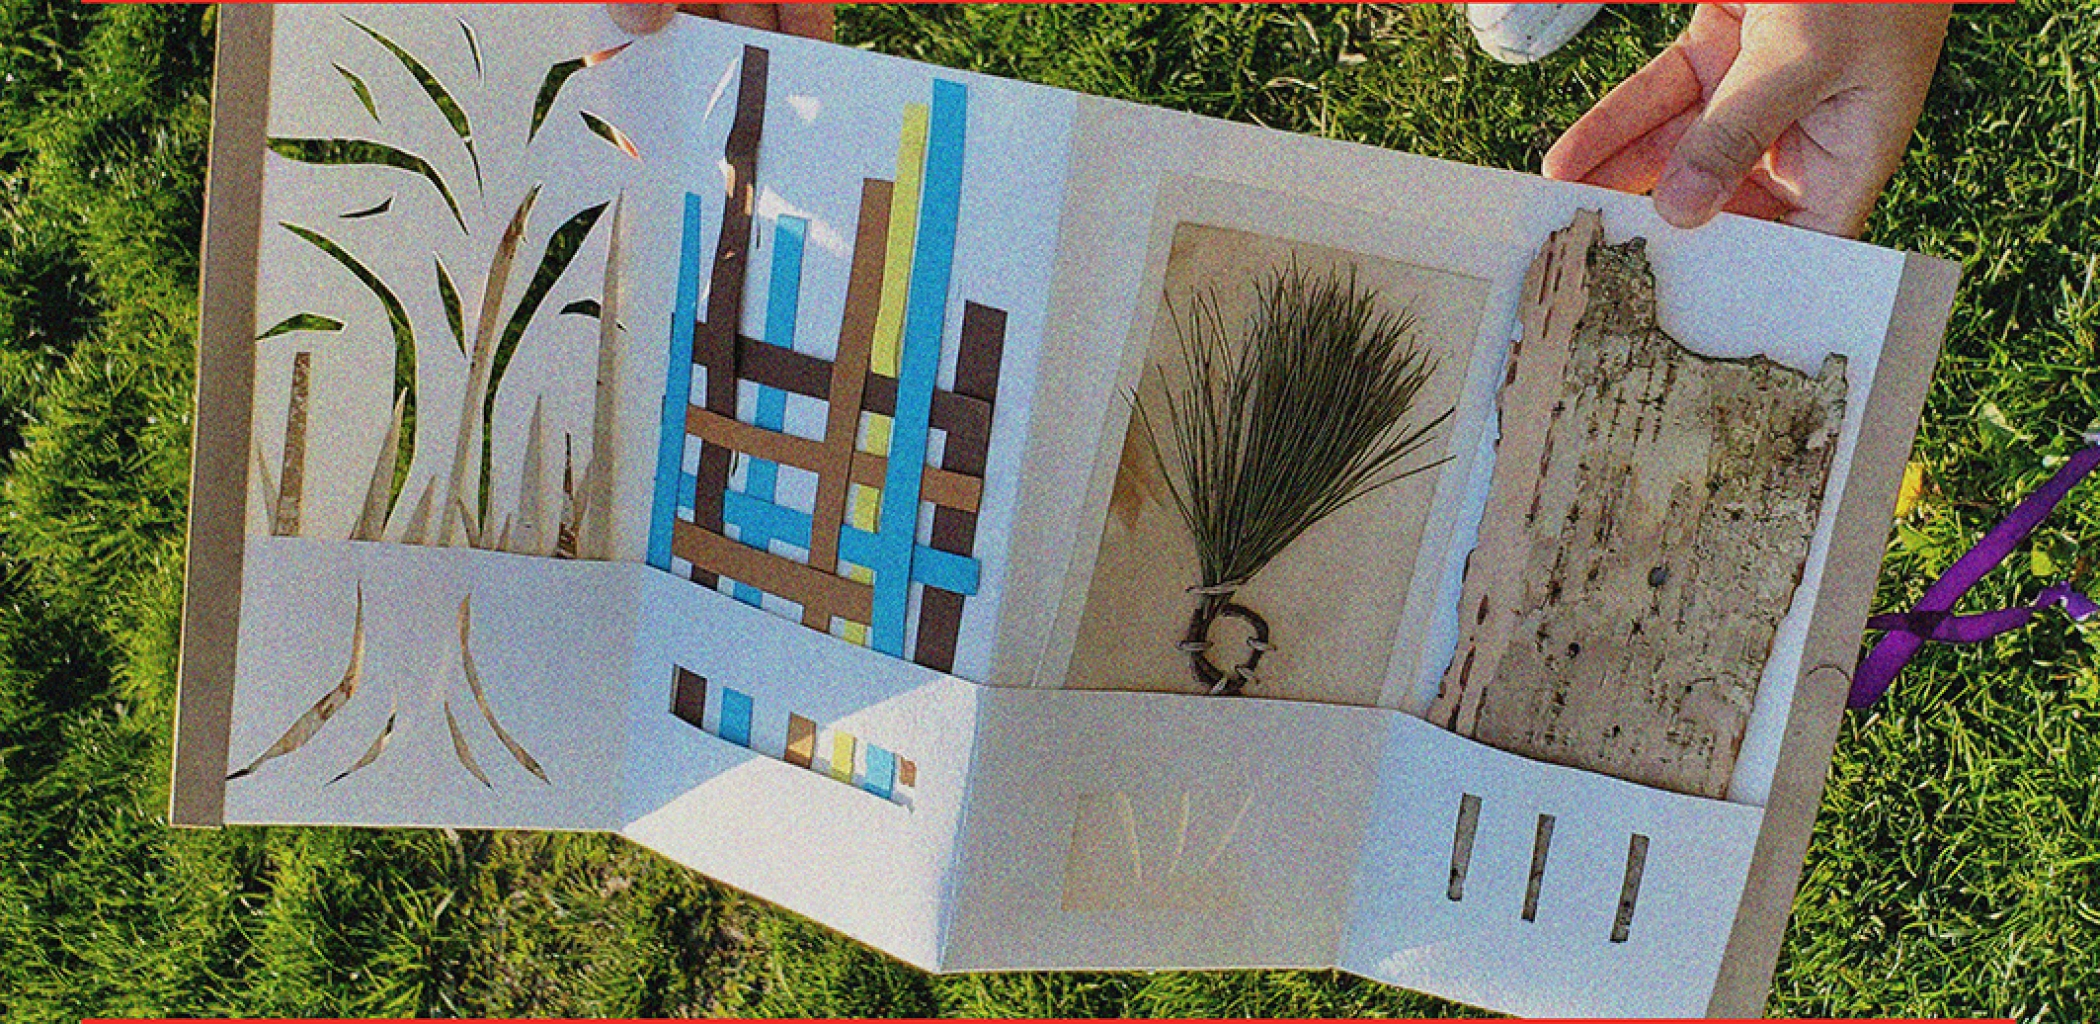 A white paper accordion book is laying on top of a sunny grass patch. The book has four panels, each side decorated with handmade cuttings and paper weavings. There are two foraged items inserted into two of the panels.